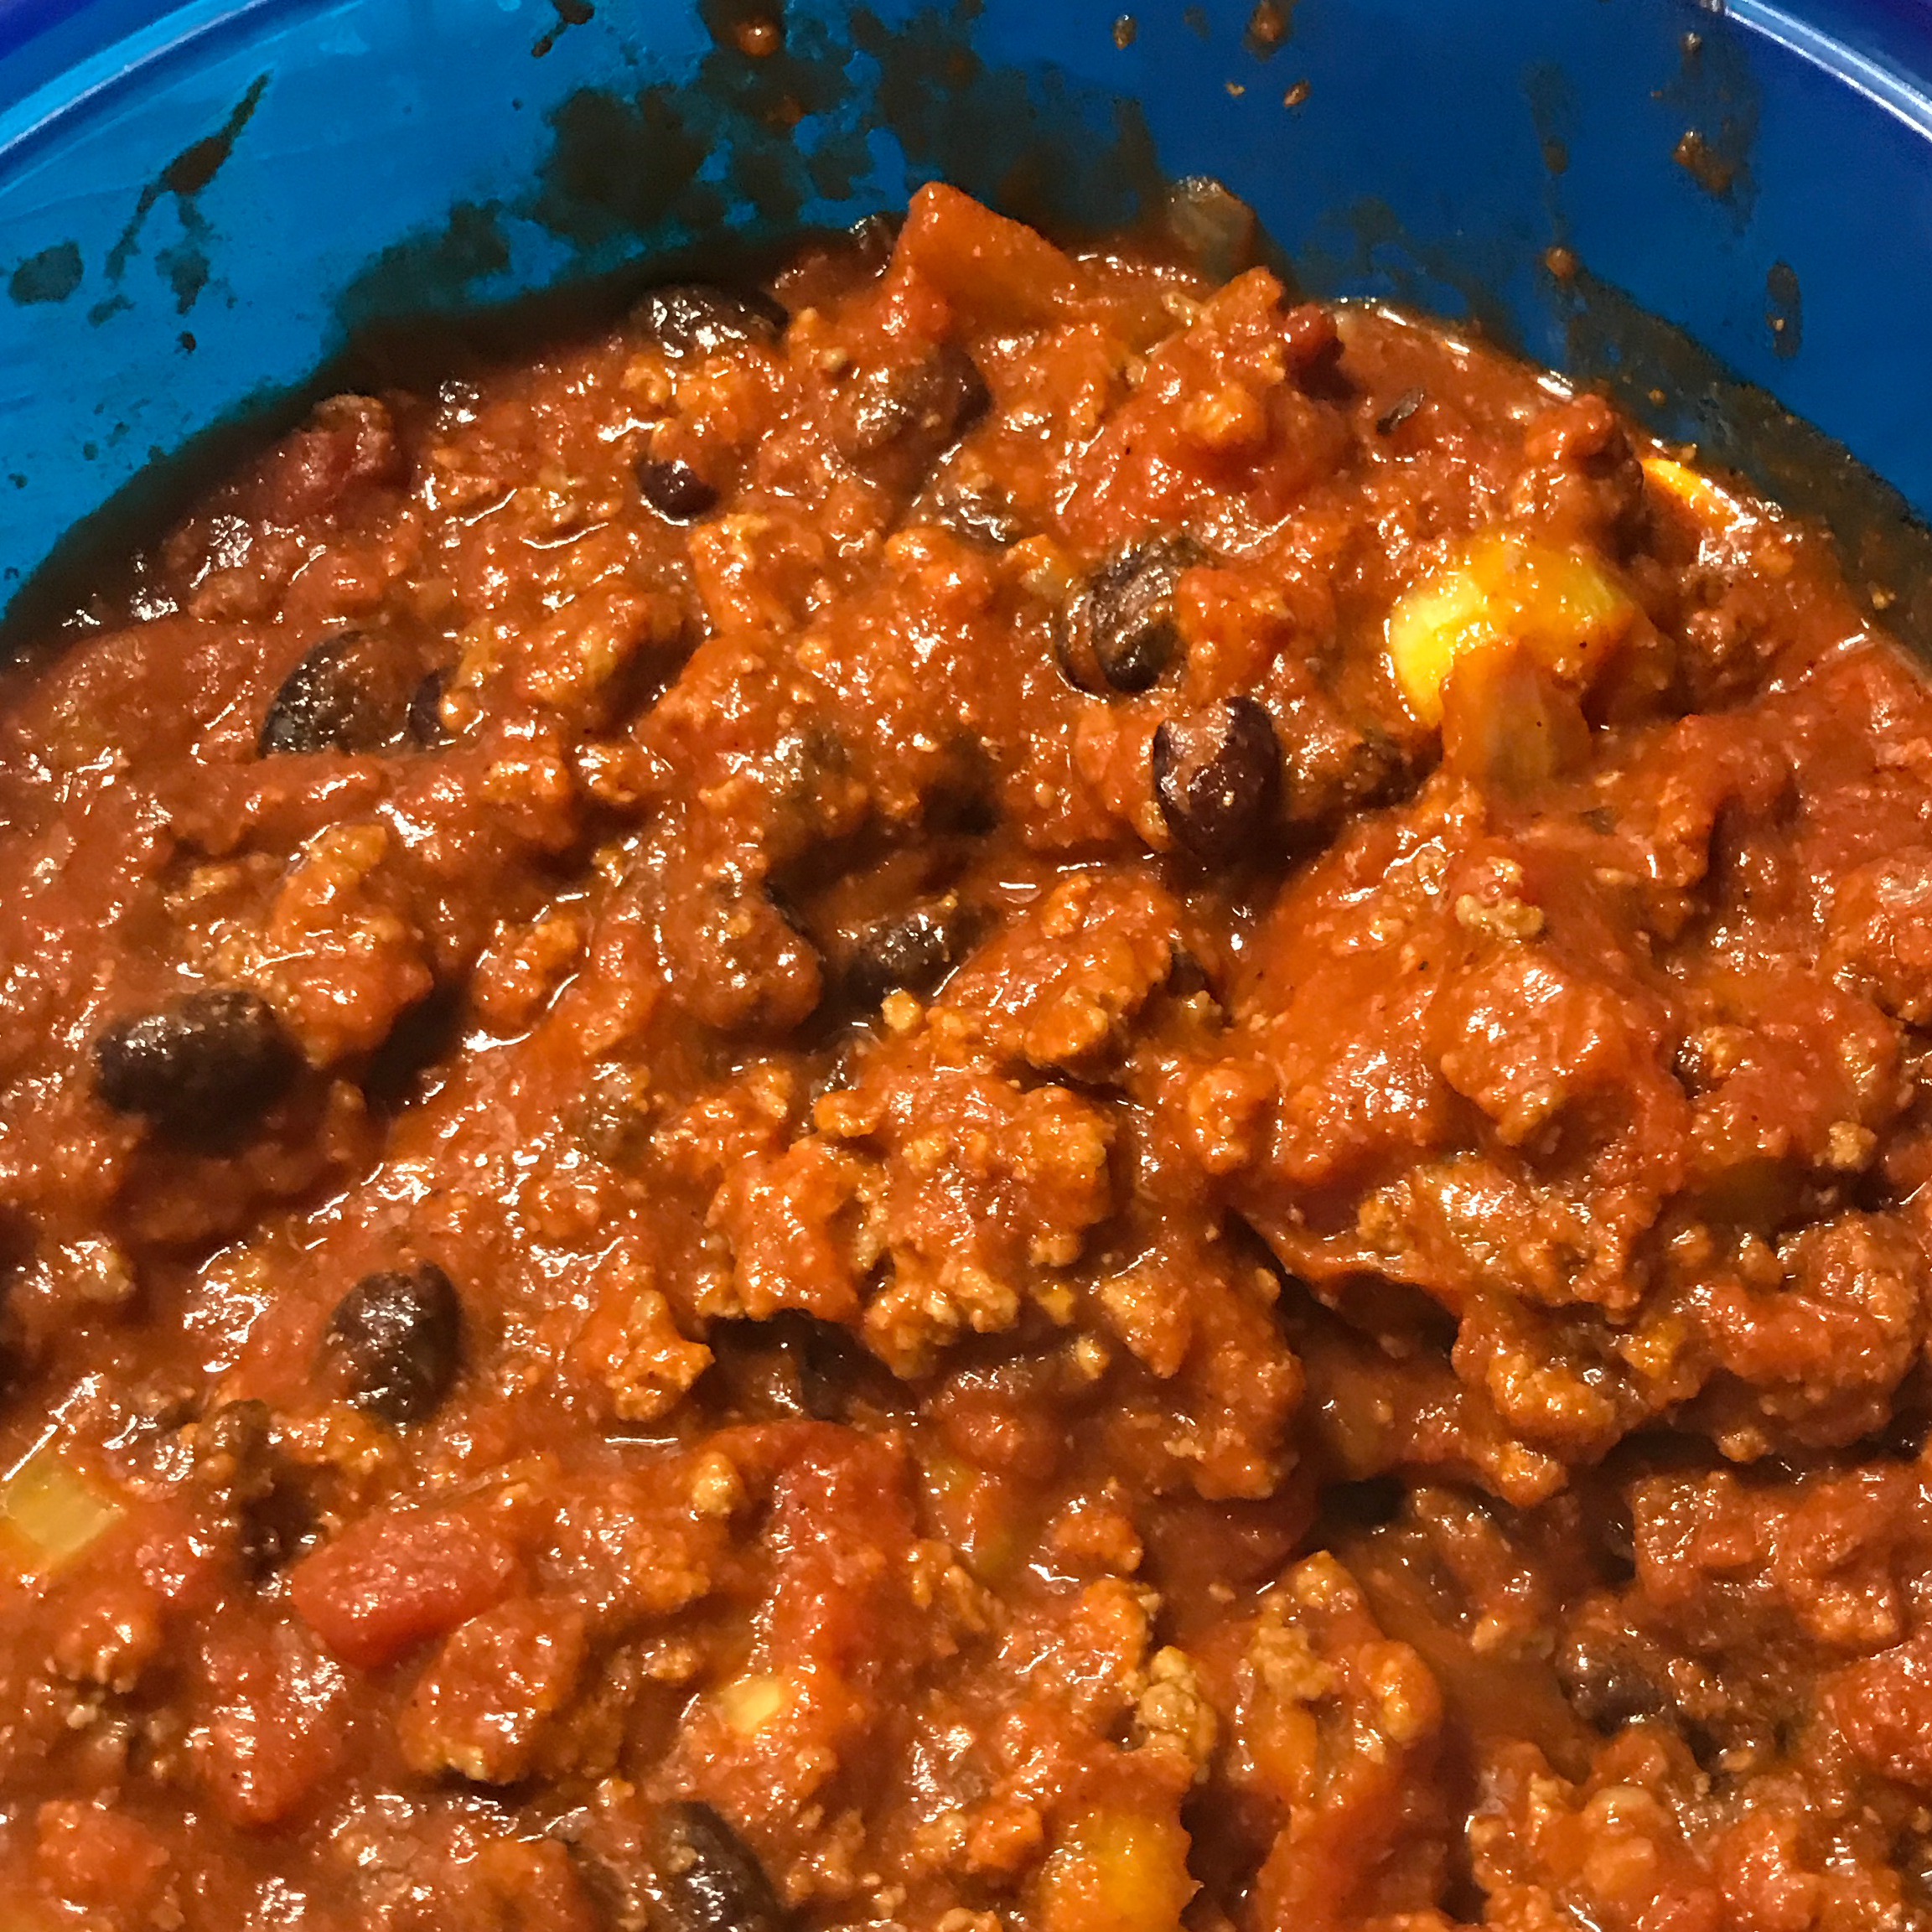 Low-Carb Slow Cooker Chili ilyse